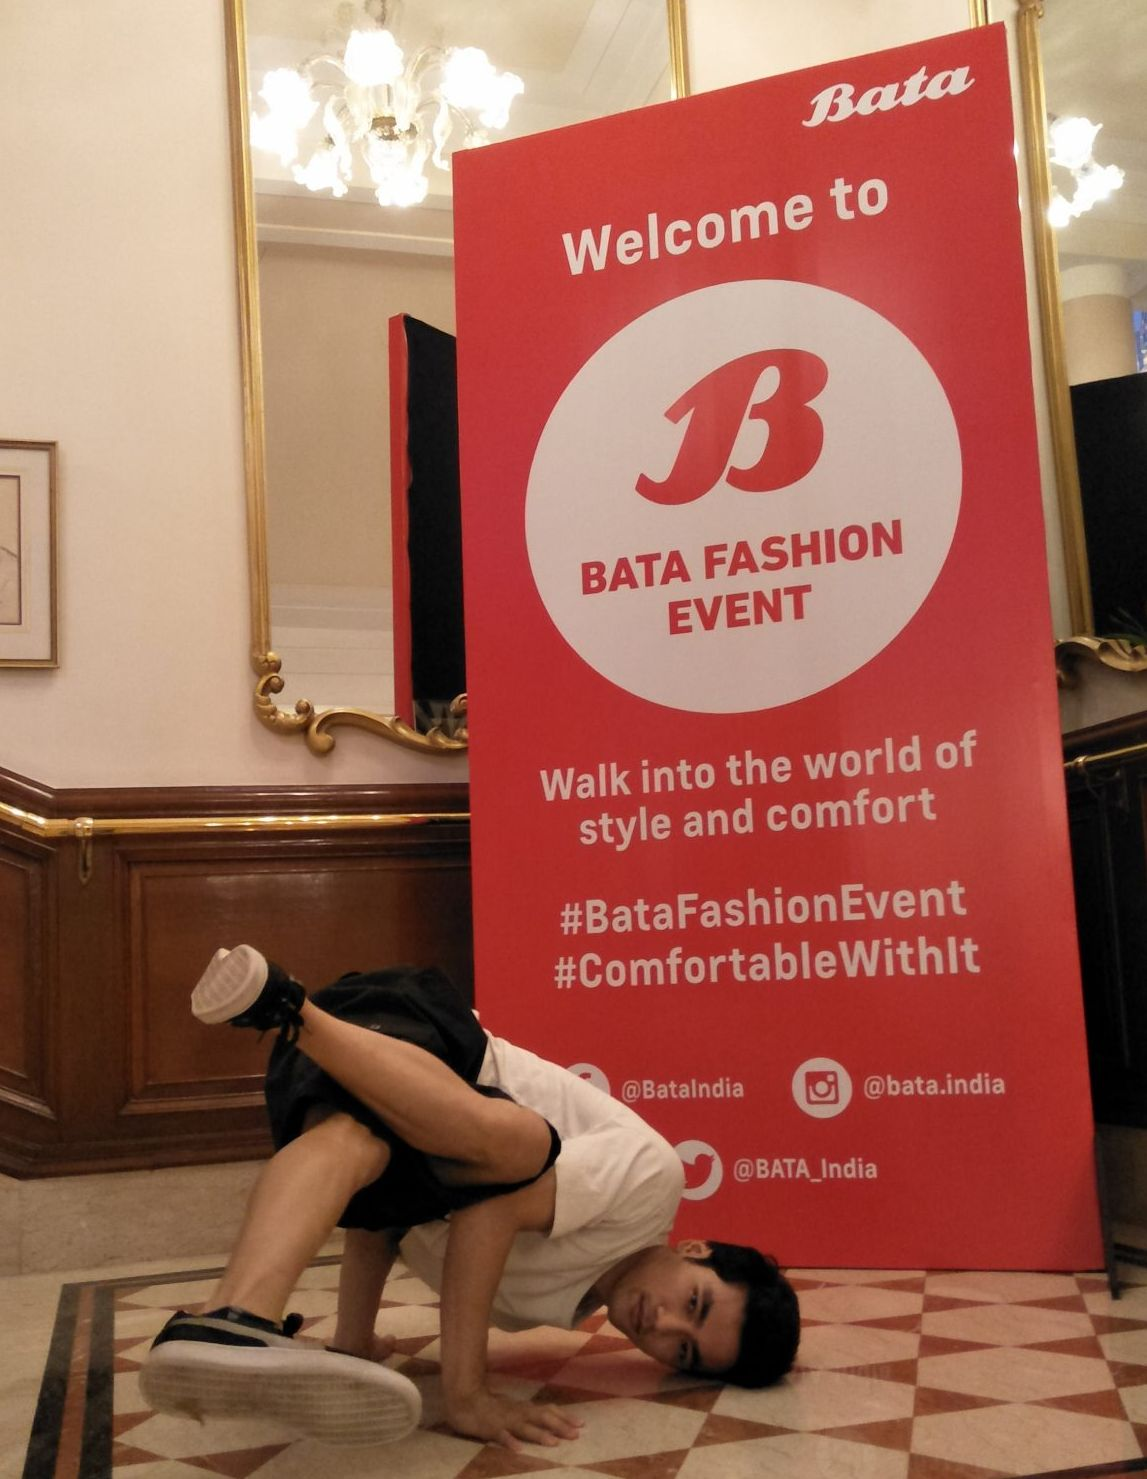 Dance Mafia Performance In Bata Event